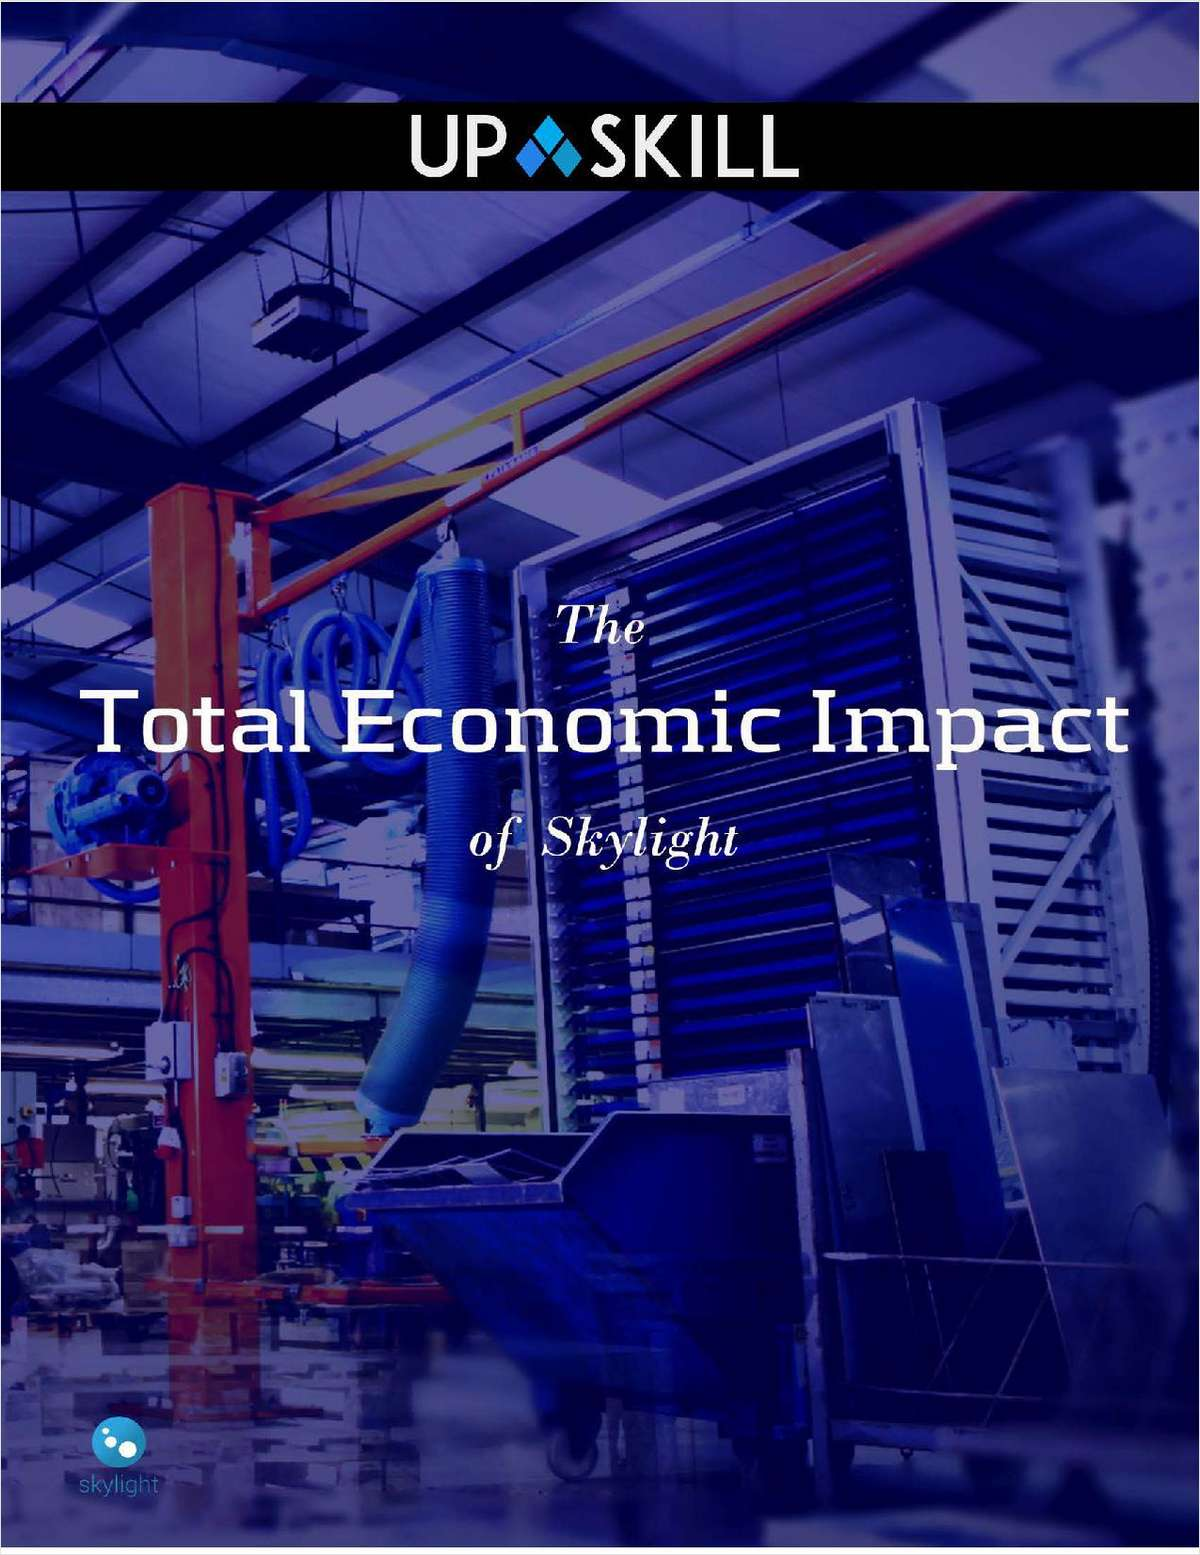 The Total Economic Impact of Wearables